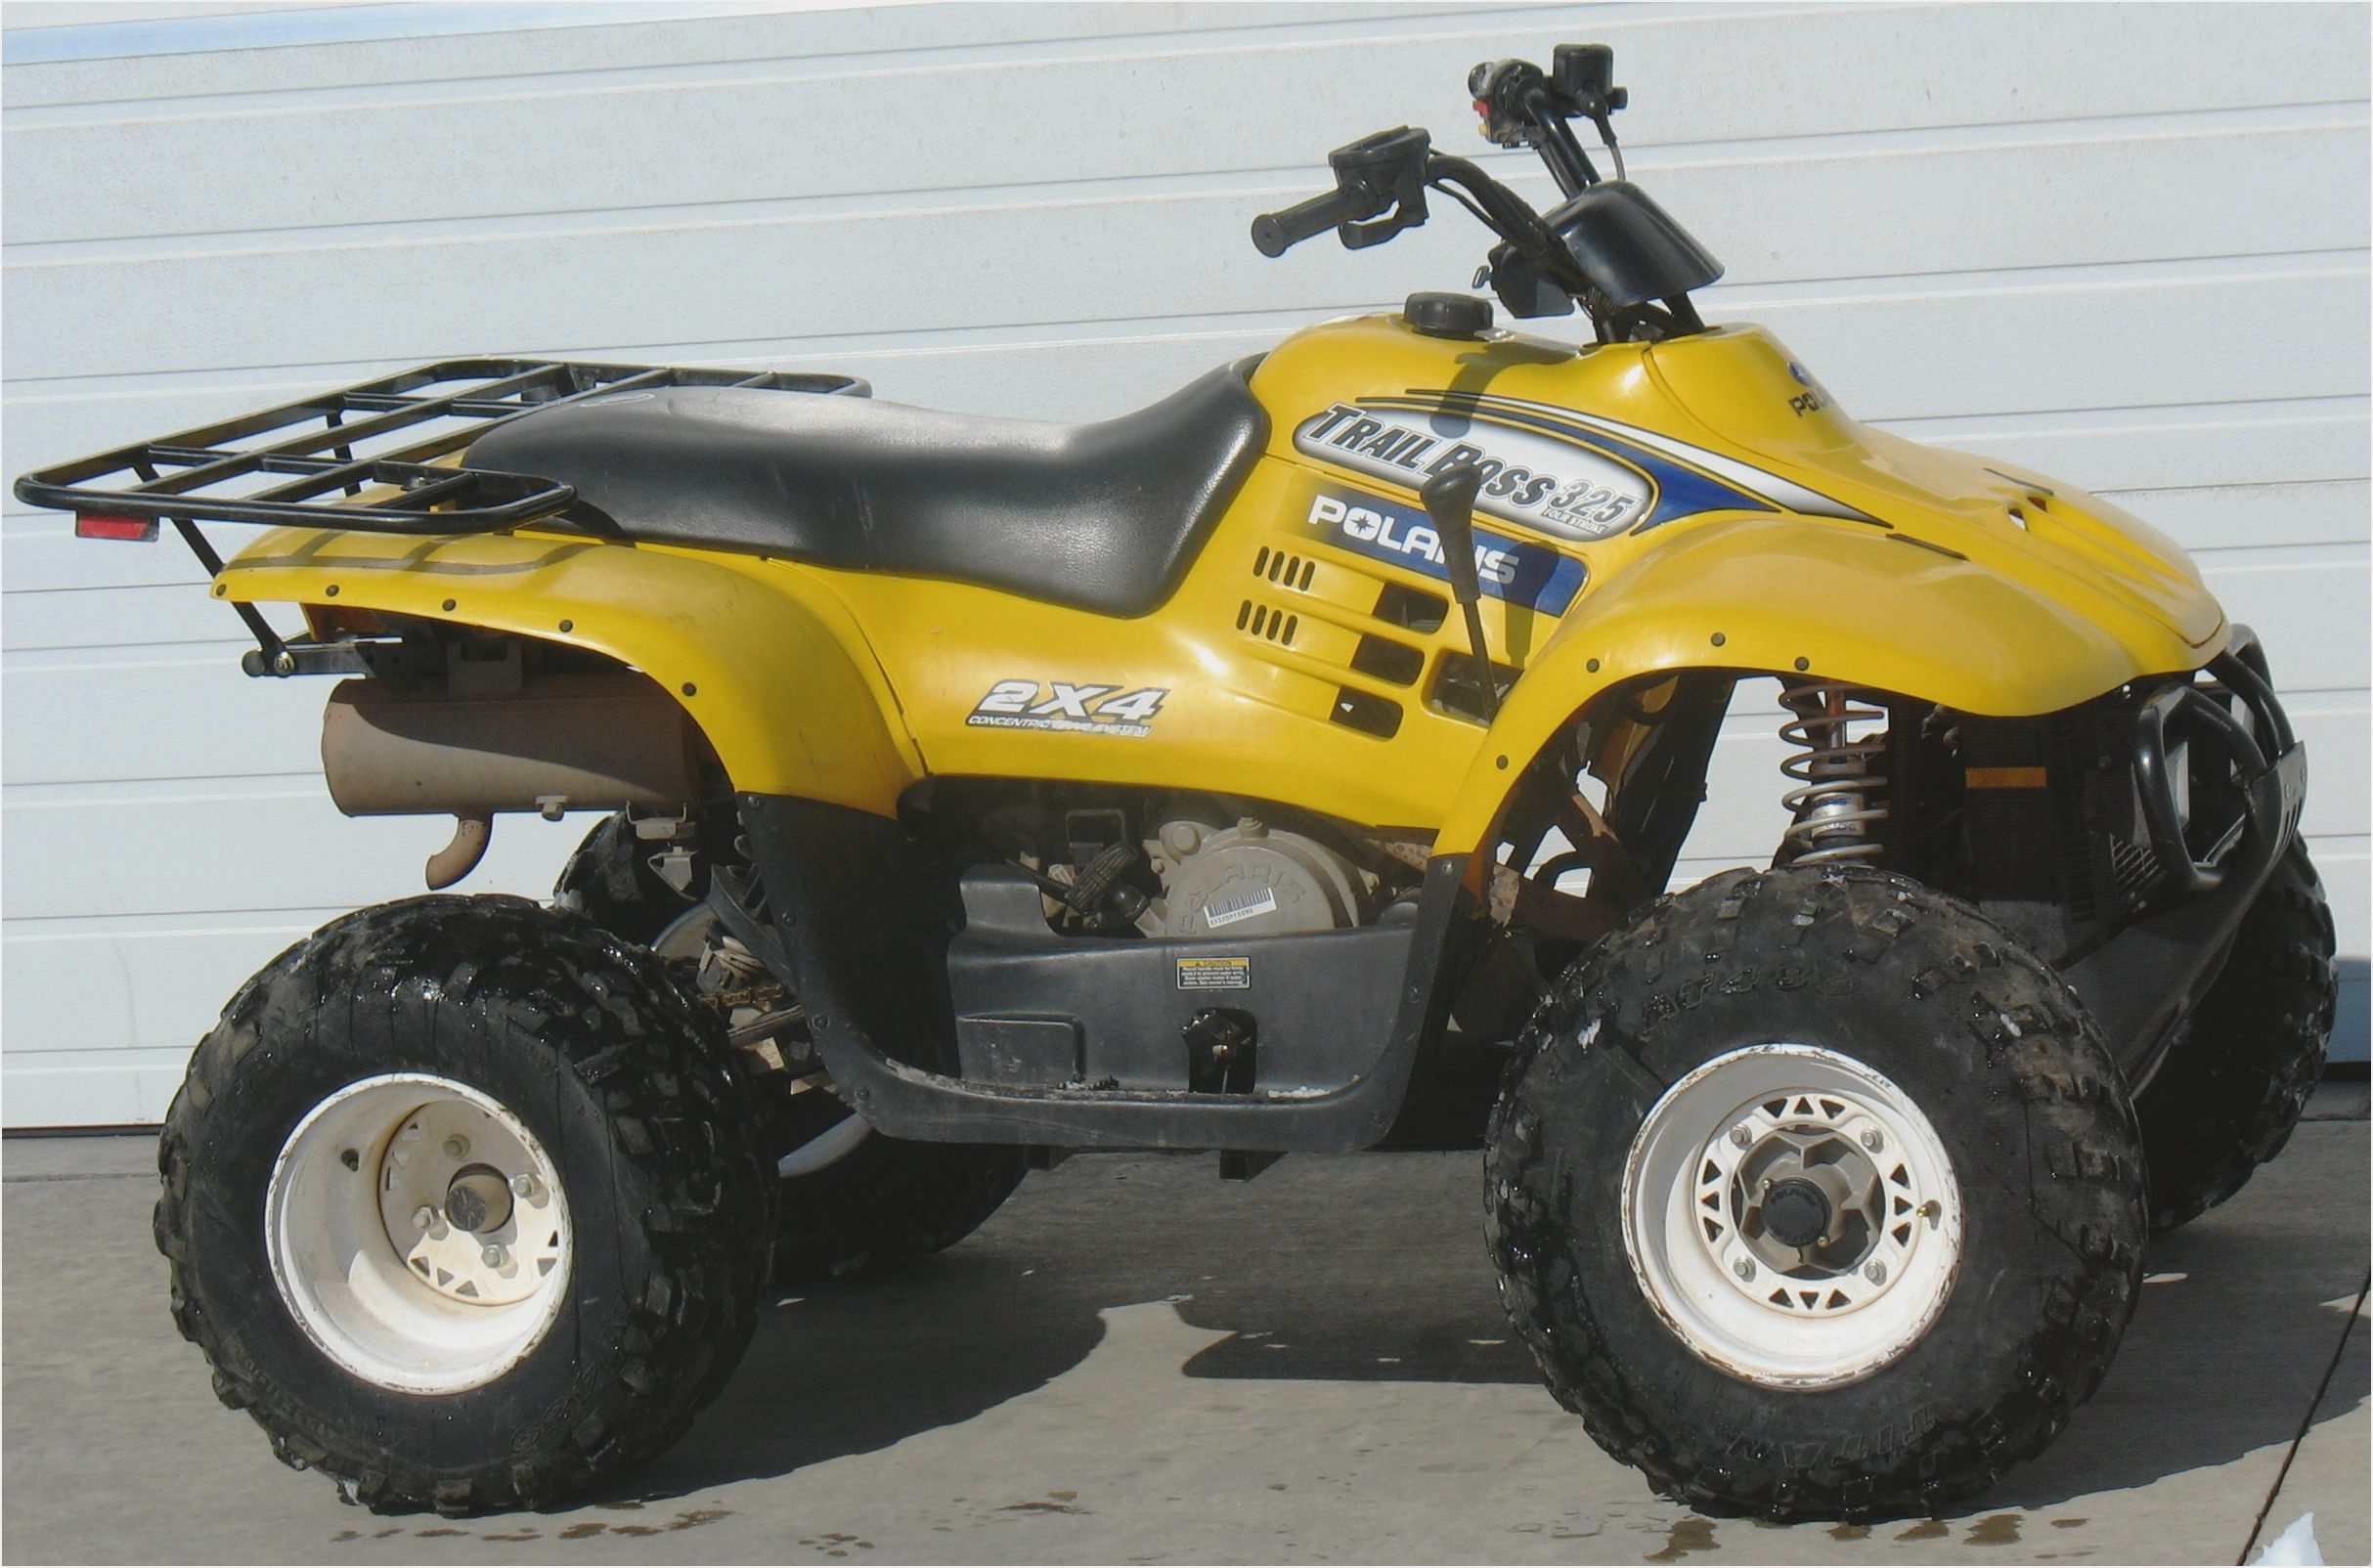 Polaris Trail Boss 330 2006 images #169518